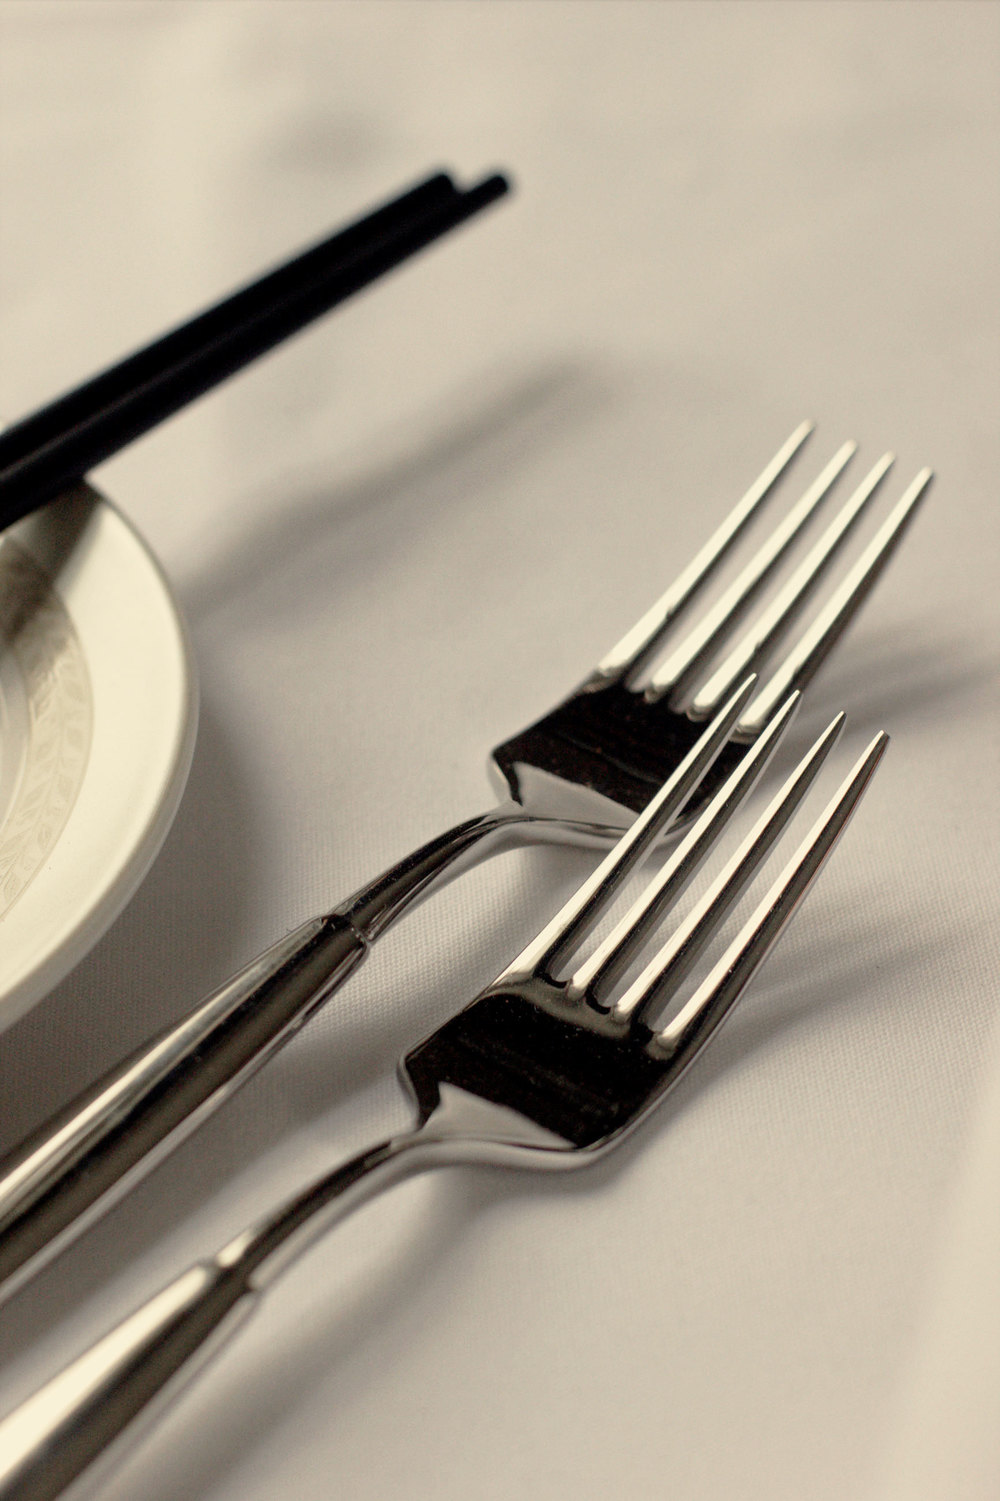 cutlery-close-up-edited.jpg